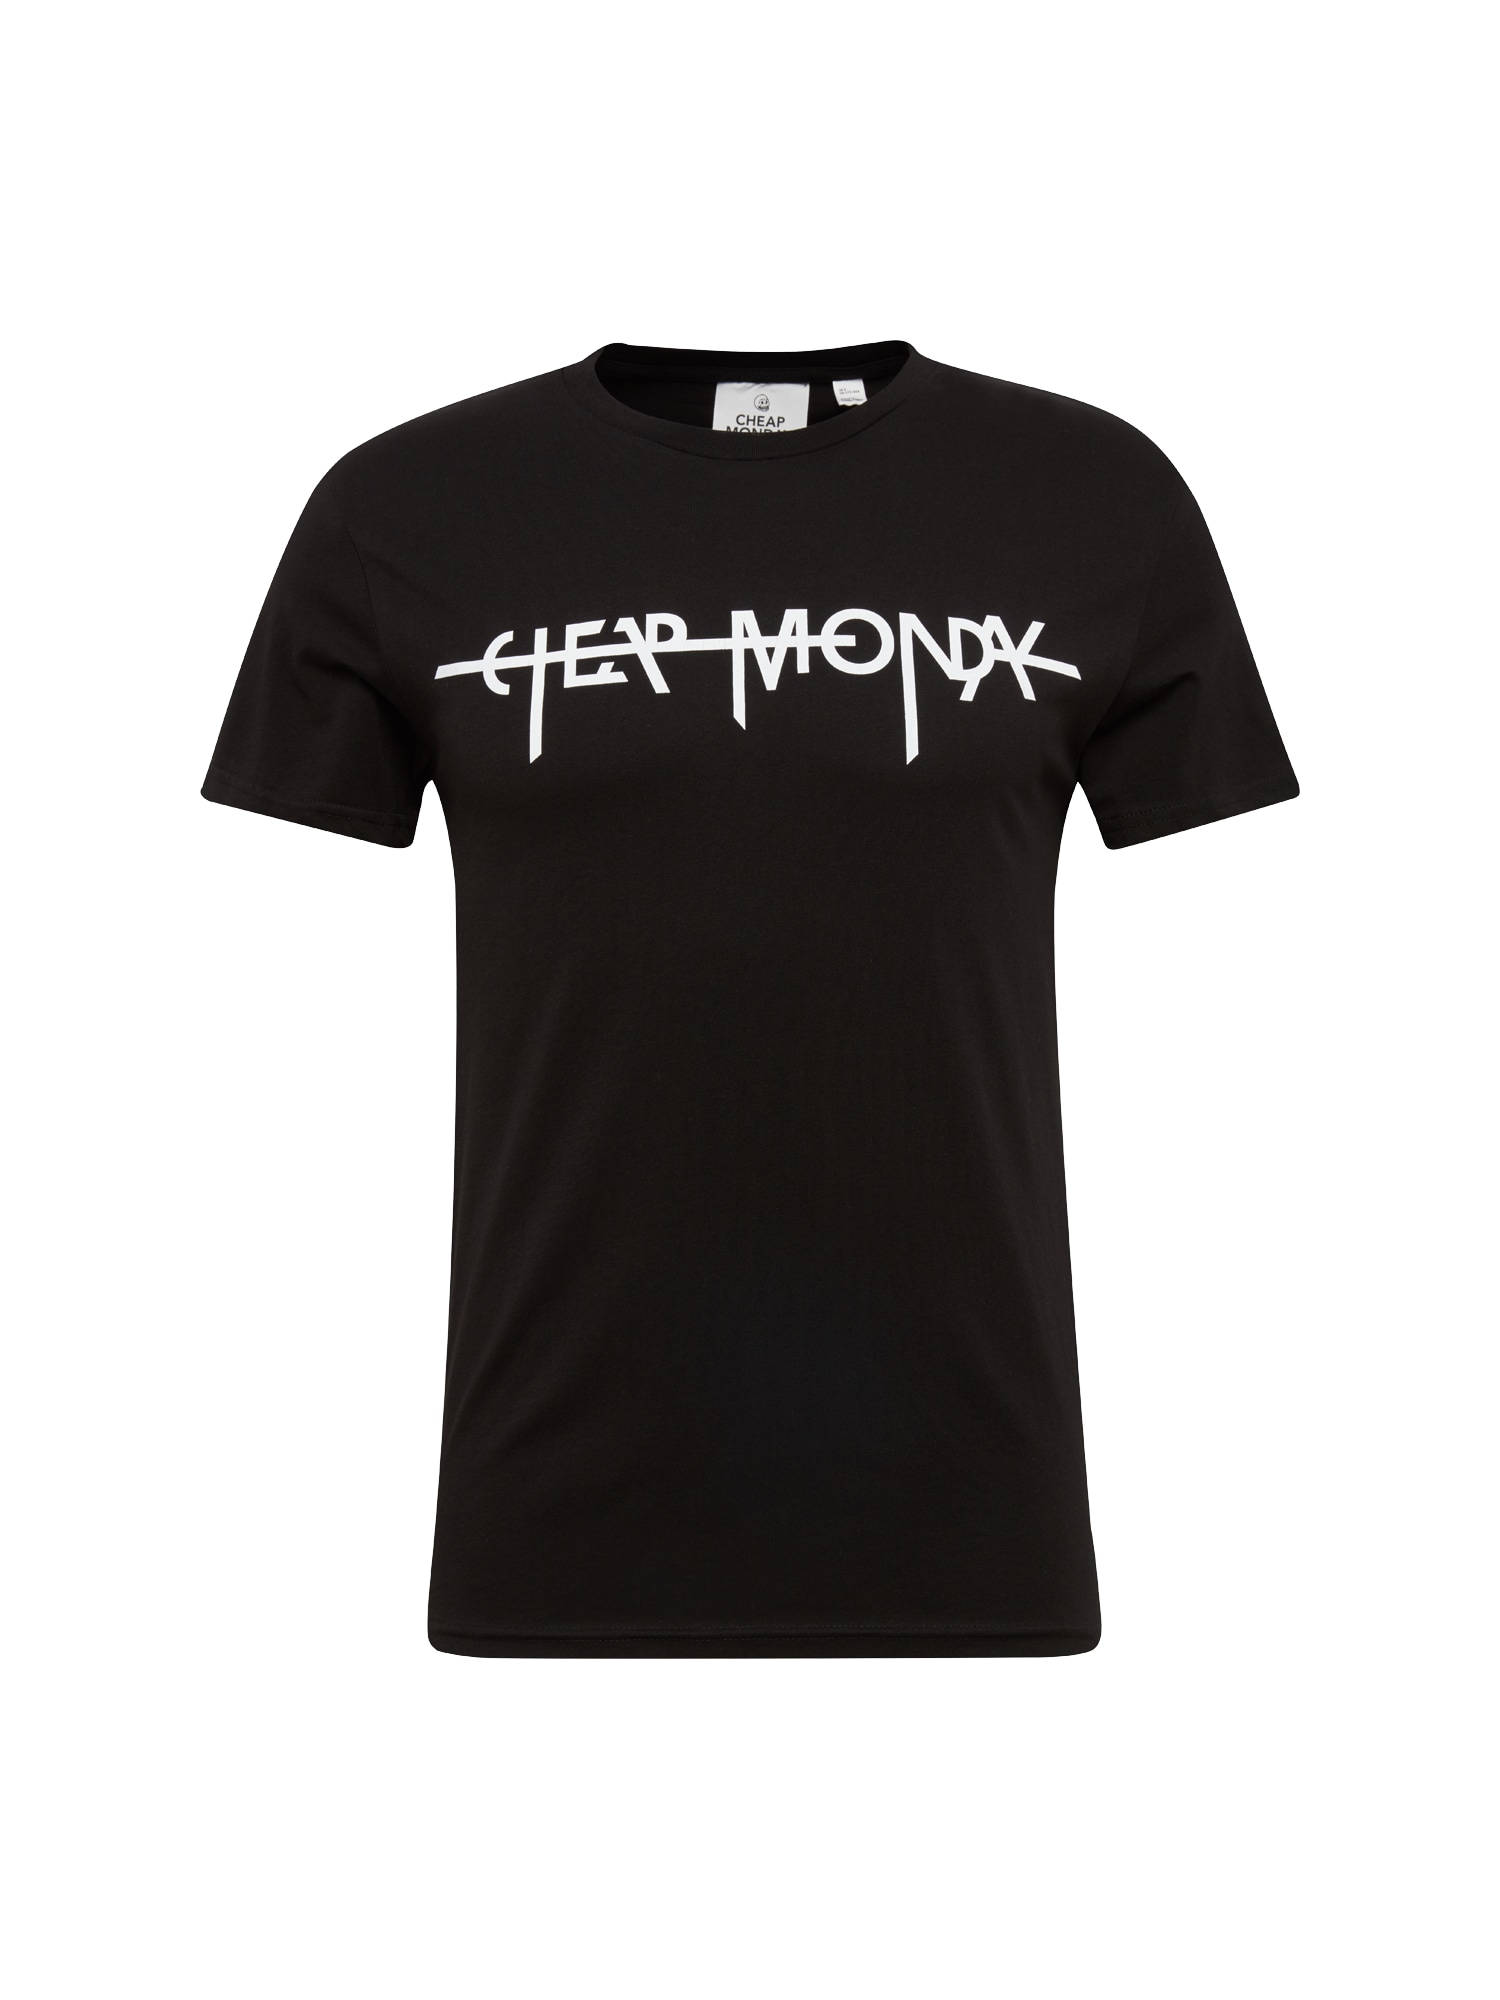 CHEAP MONDAY Heren Shirt Standard tee Hacker logo zwart wit